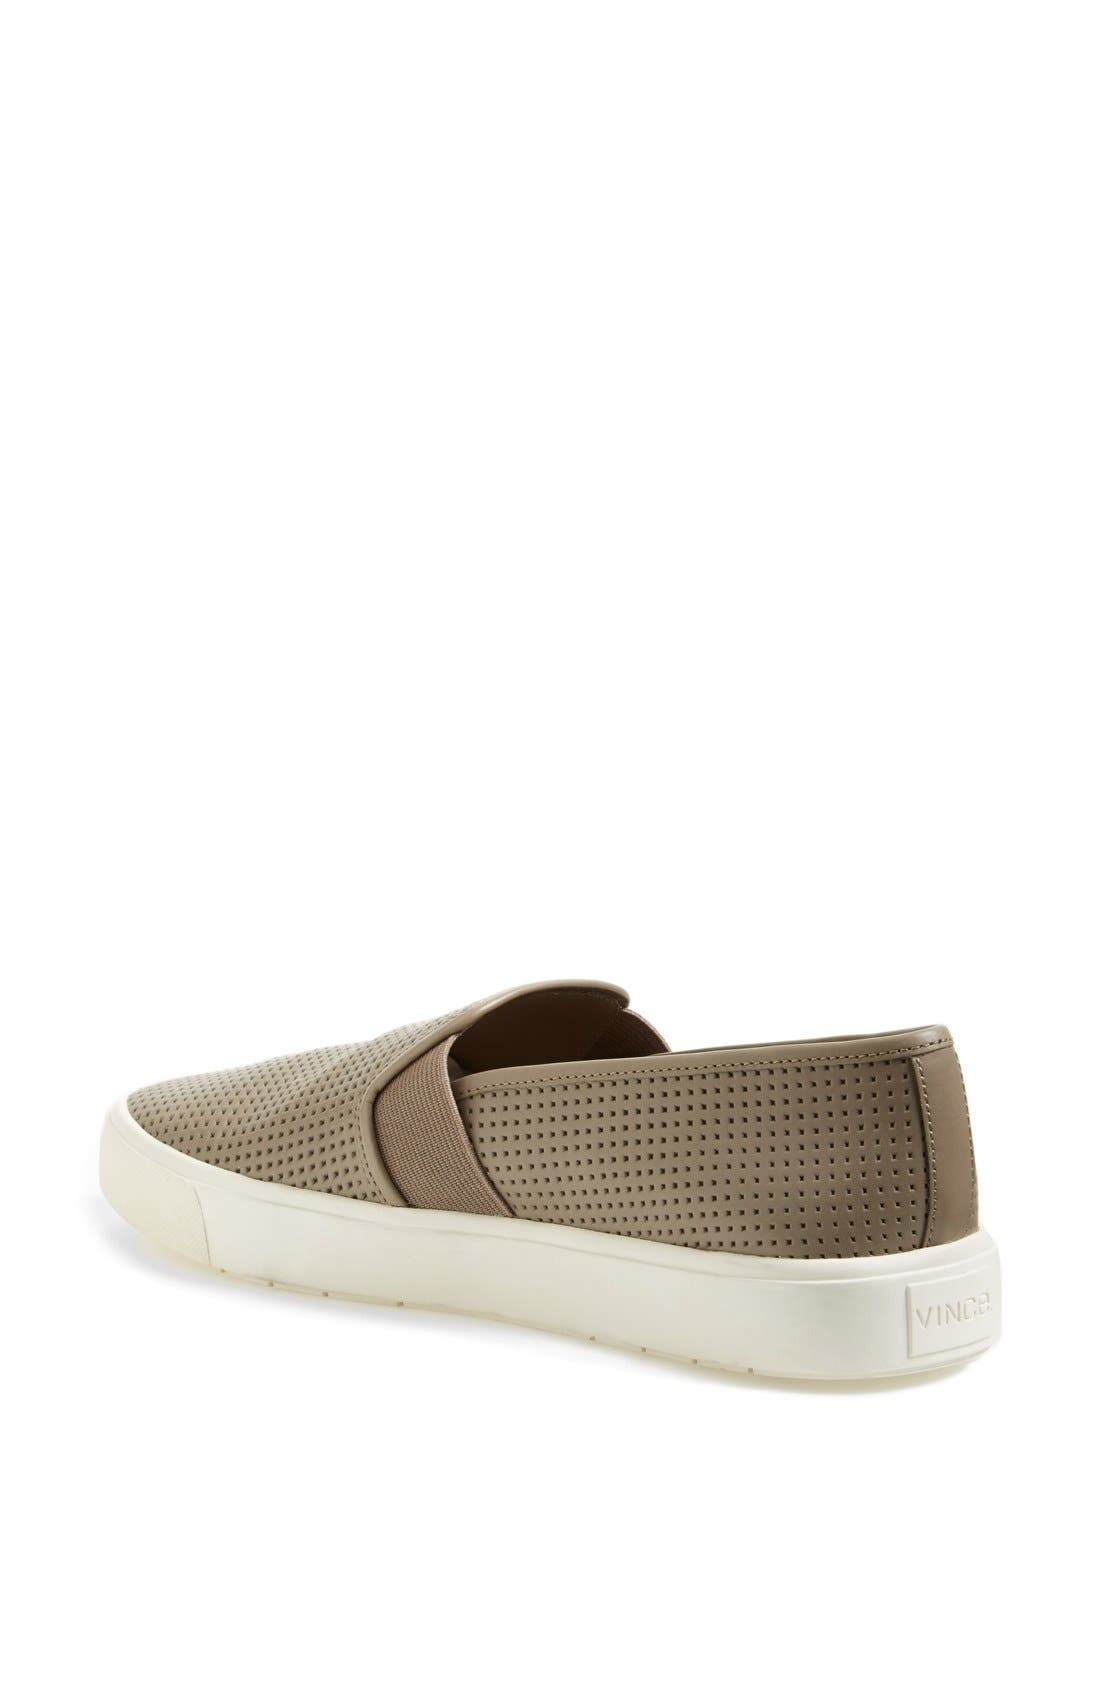 Blair 5 Slip-On Sneaker,                             Alternate thumbnail 2, color,                             Woodsmoke